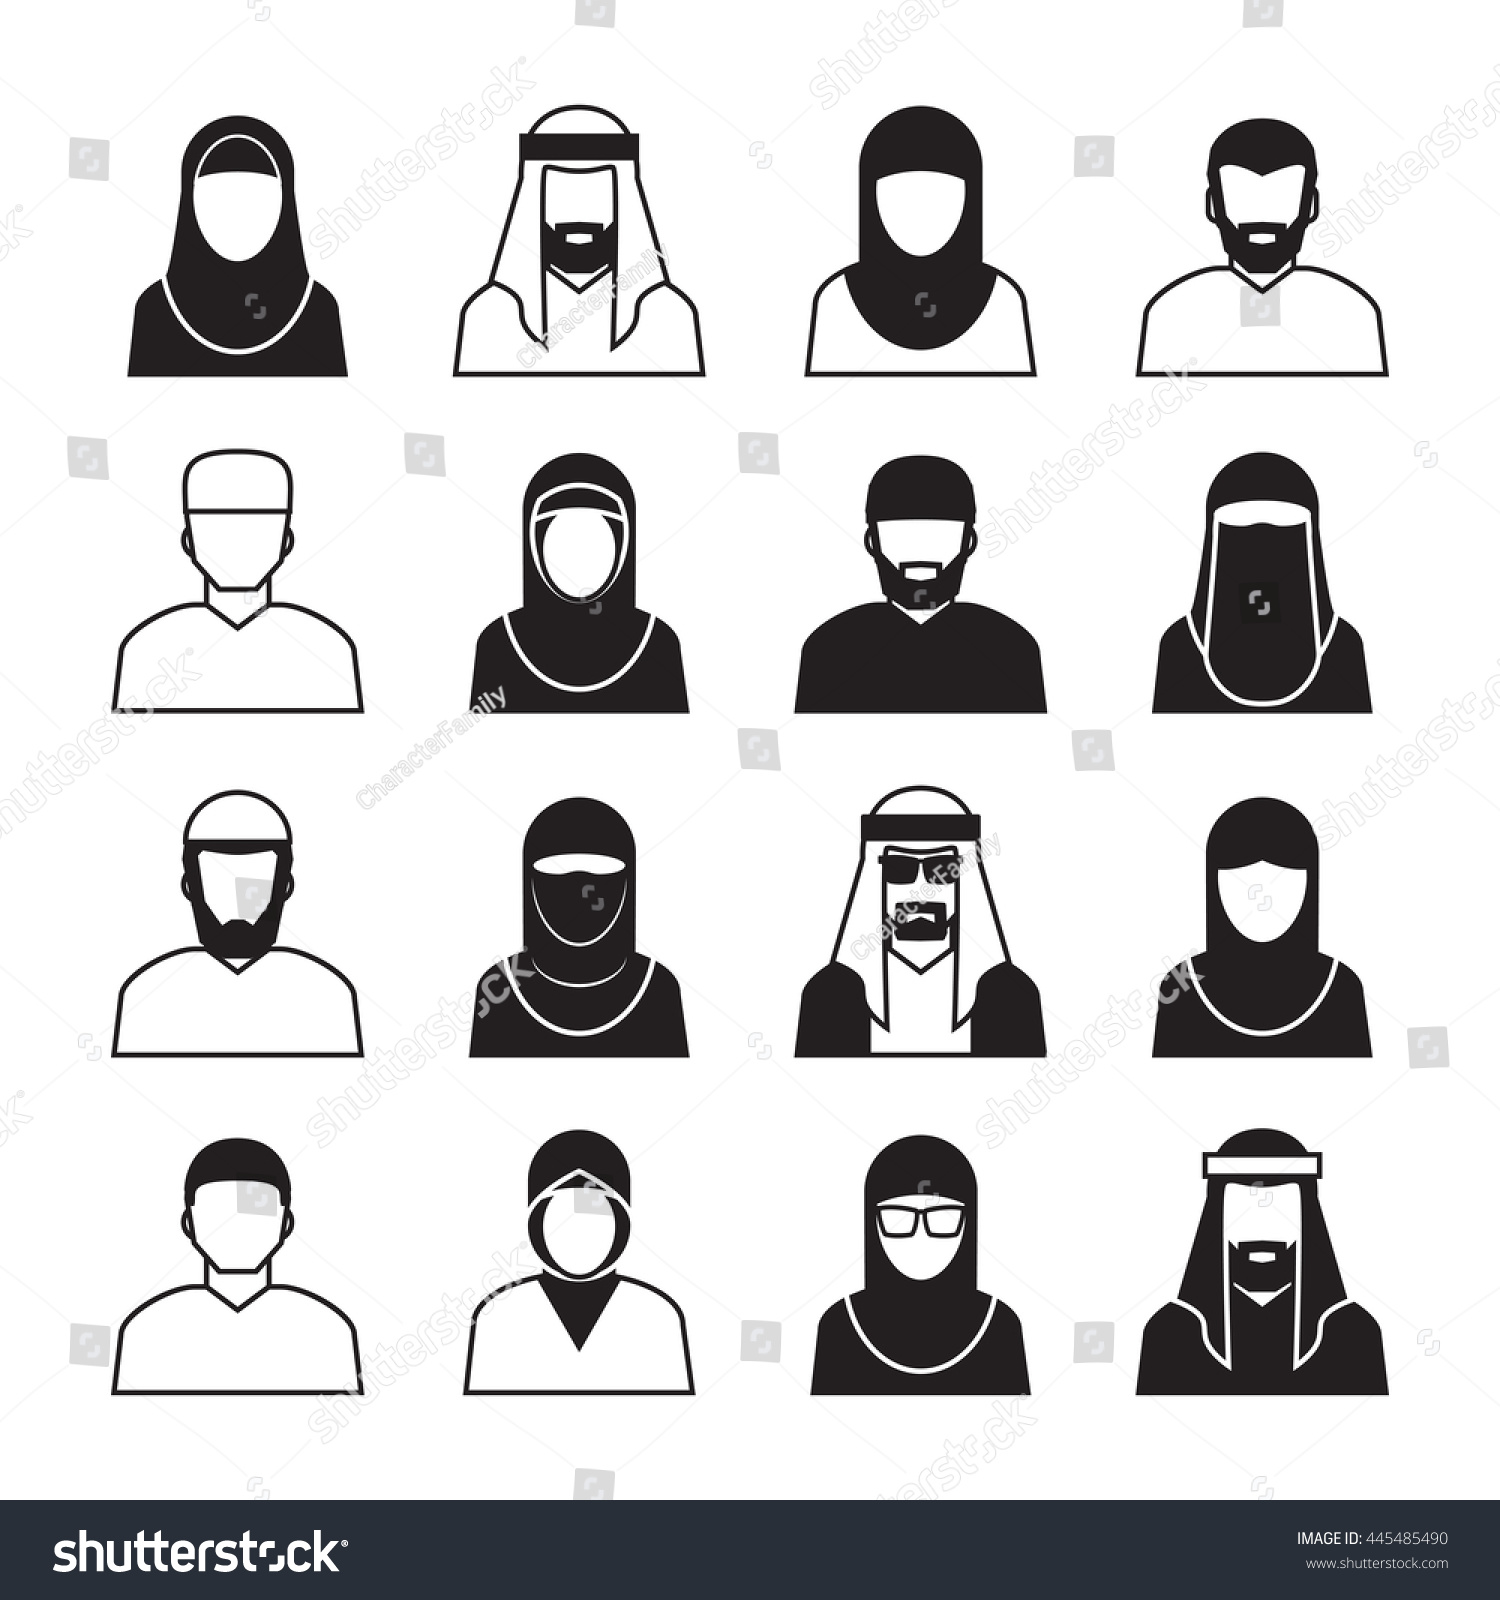 Middle Eastern People Vector Icons Symbol Stock Vector Royalty Free